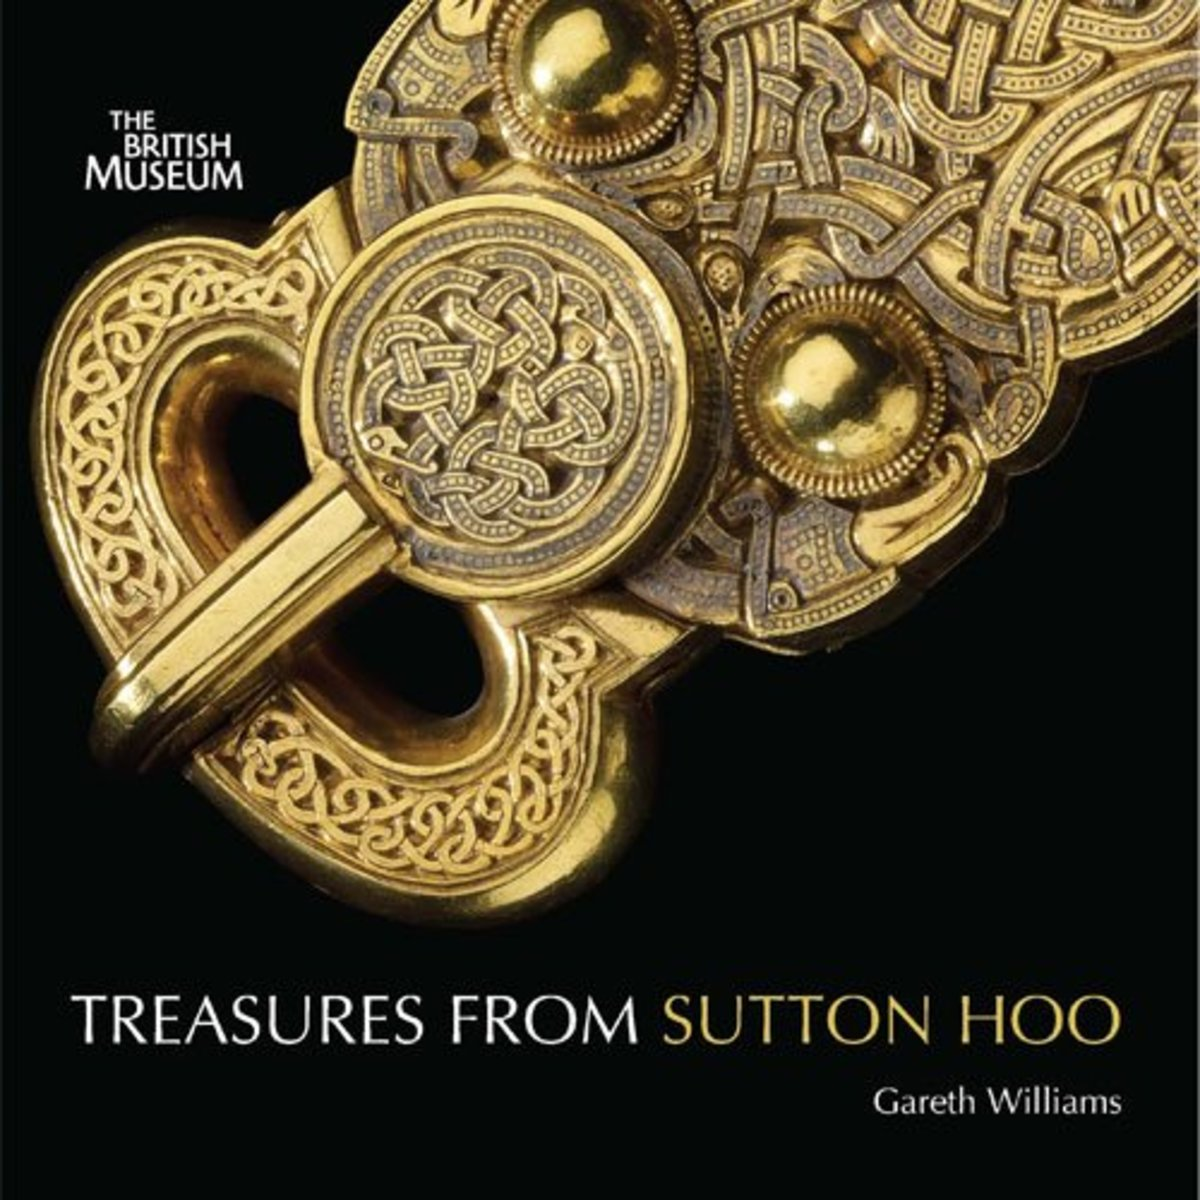 The book you always wanted. The Sutton Hoo exhibition has been opened and well worth the visit